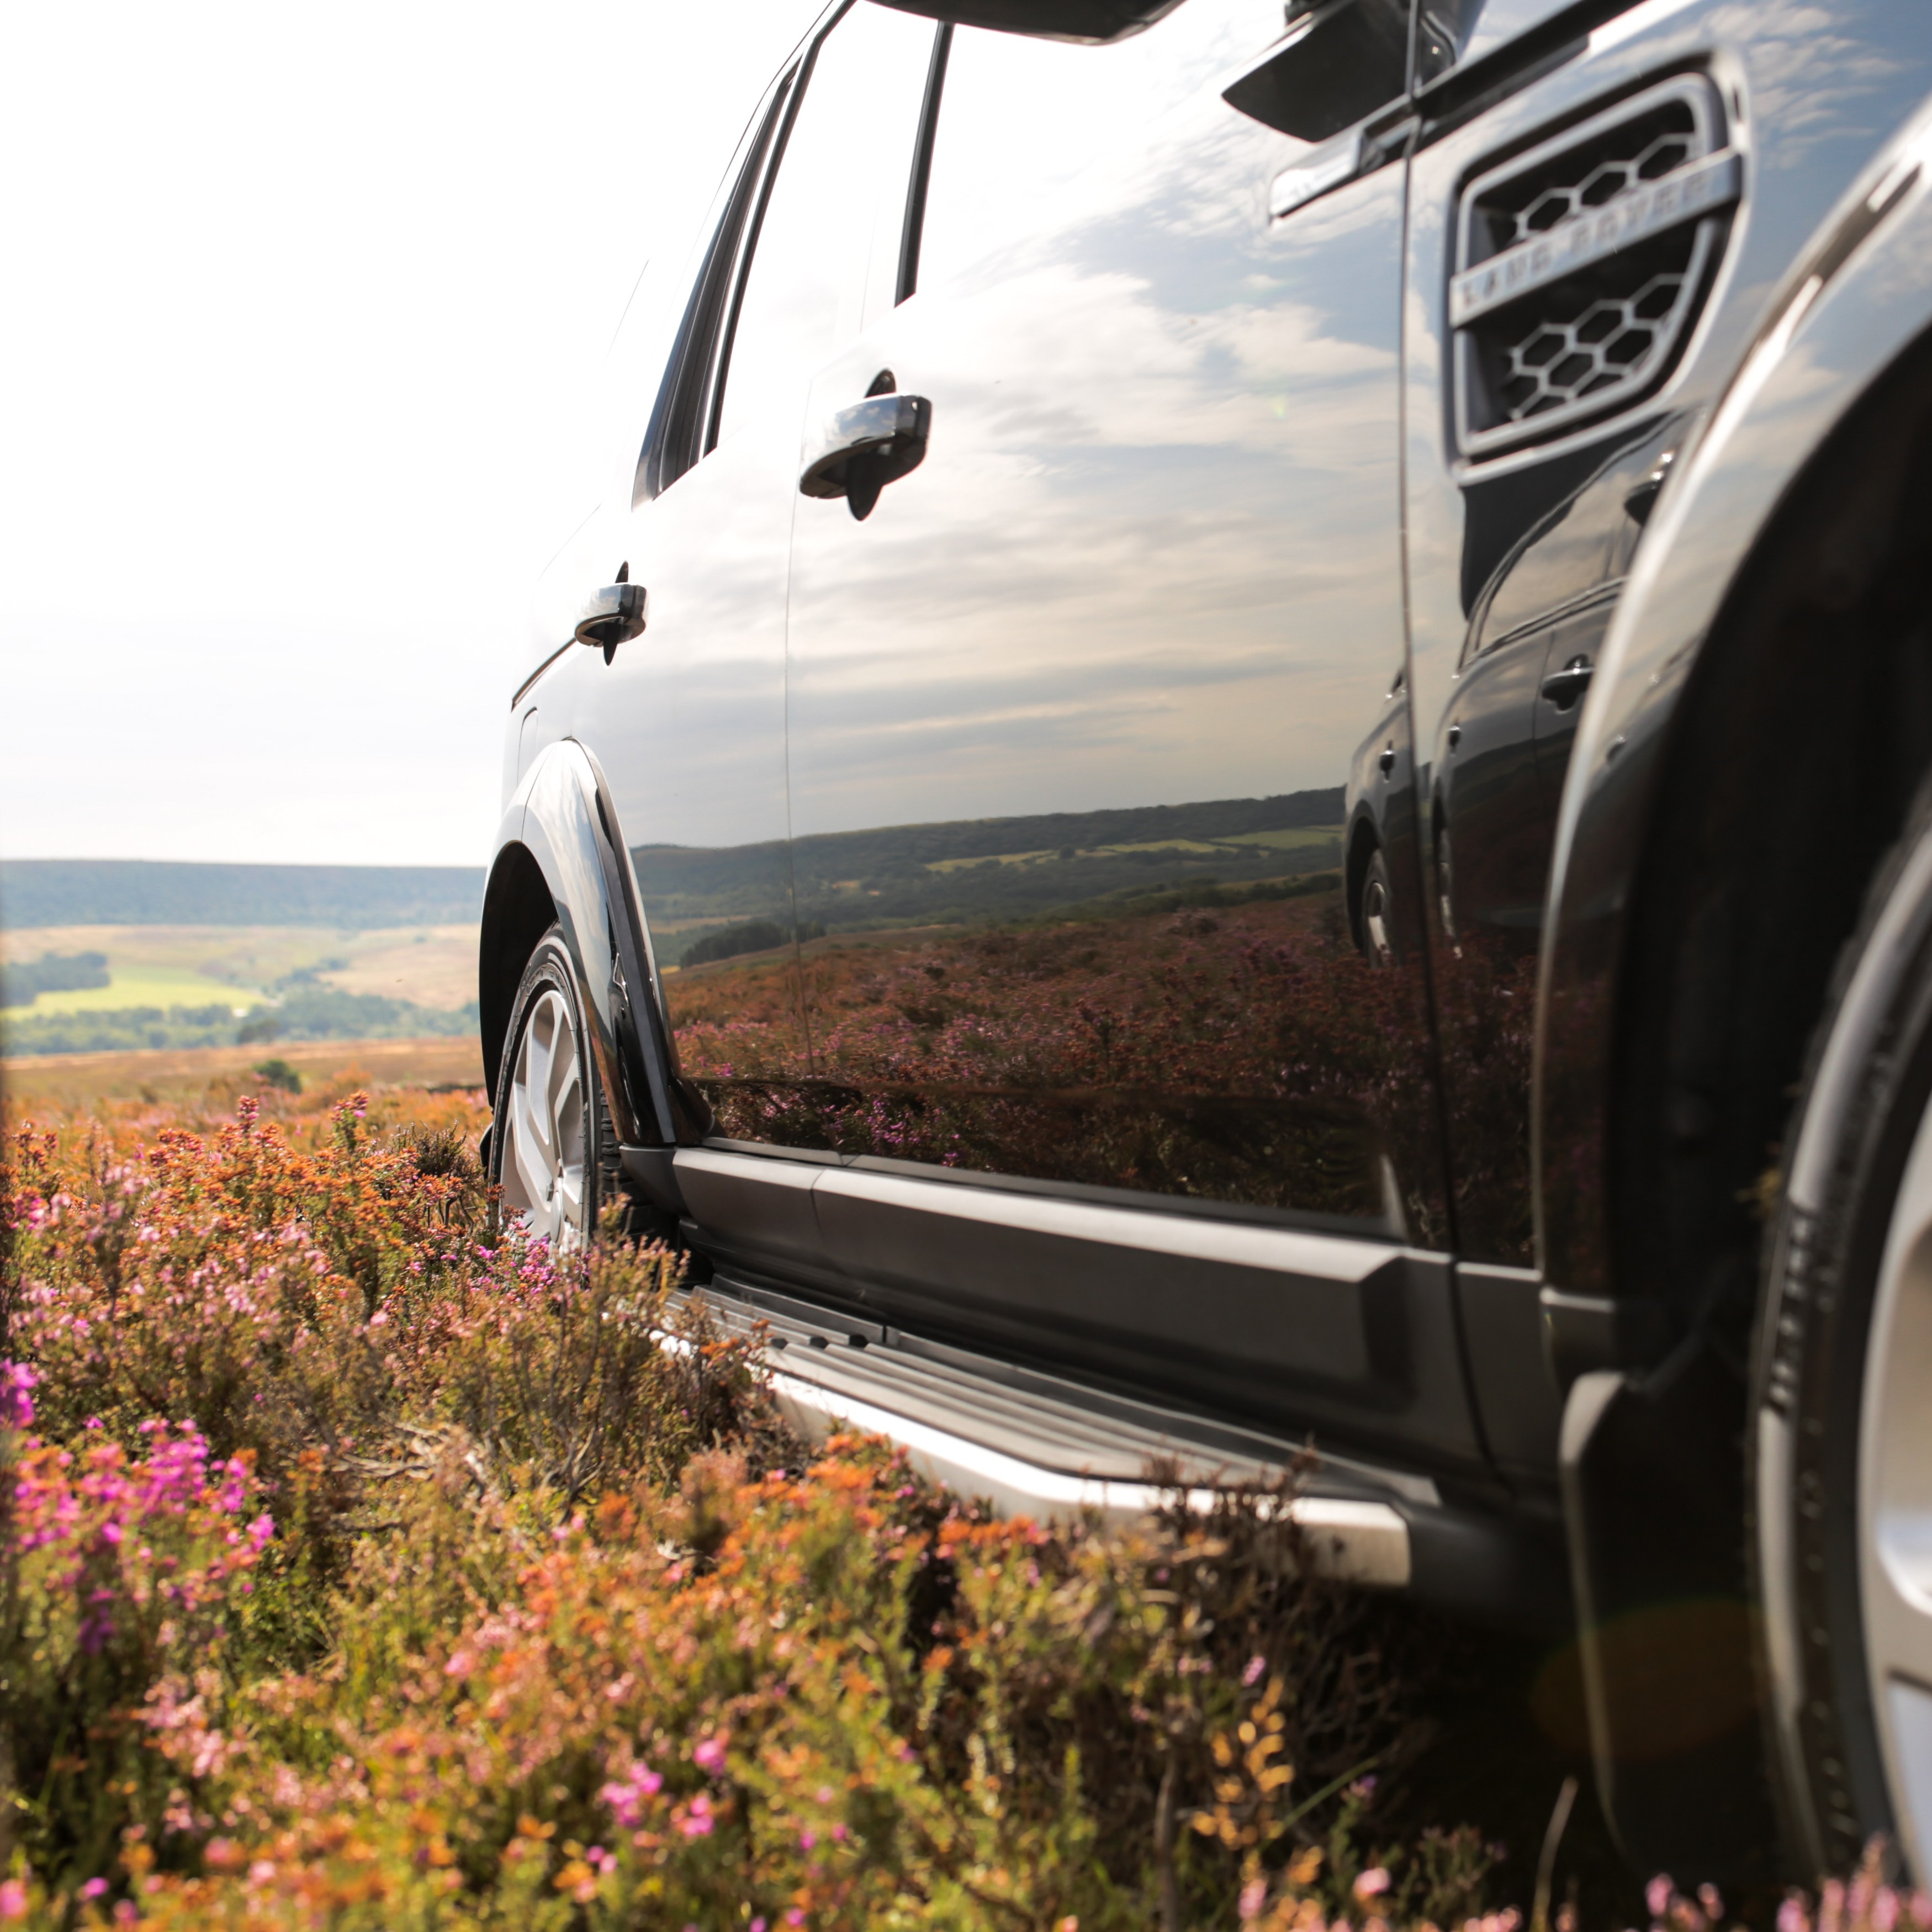 Landrover Discovery on Bransdale Moor, North Yorkshire